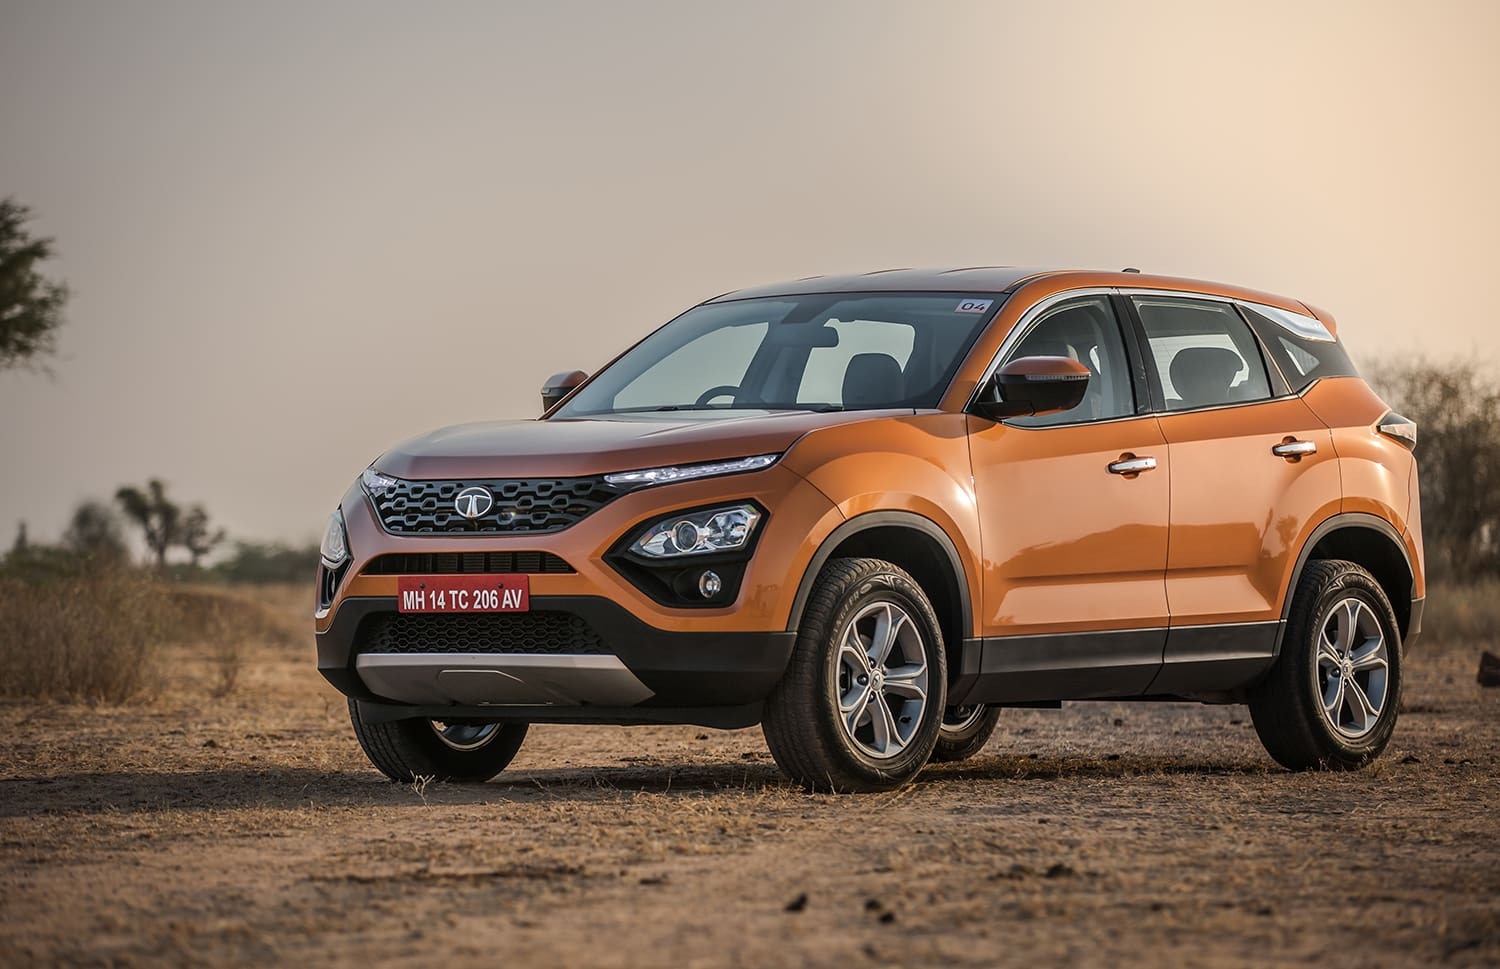 Tata Harrier Review: First Drive